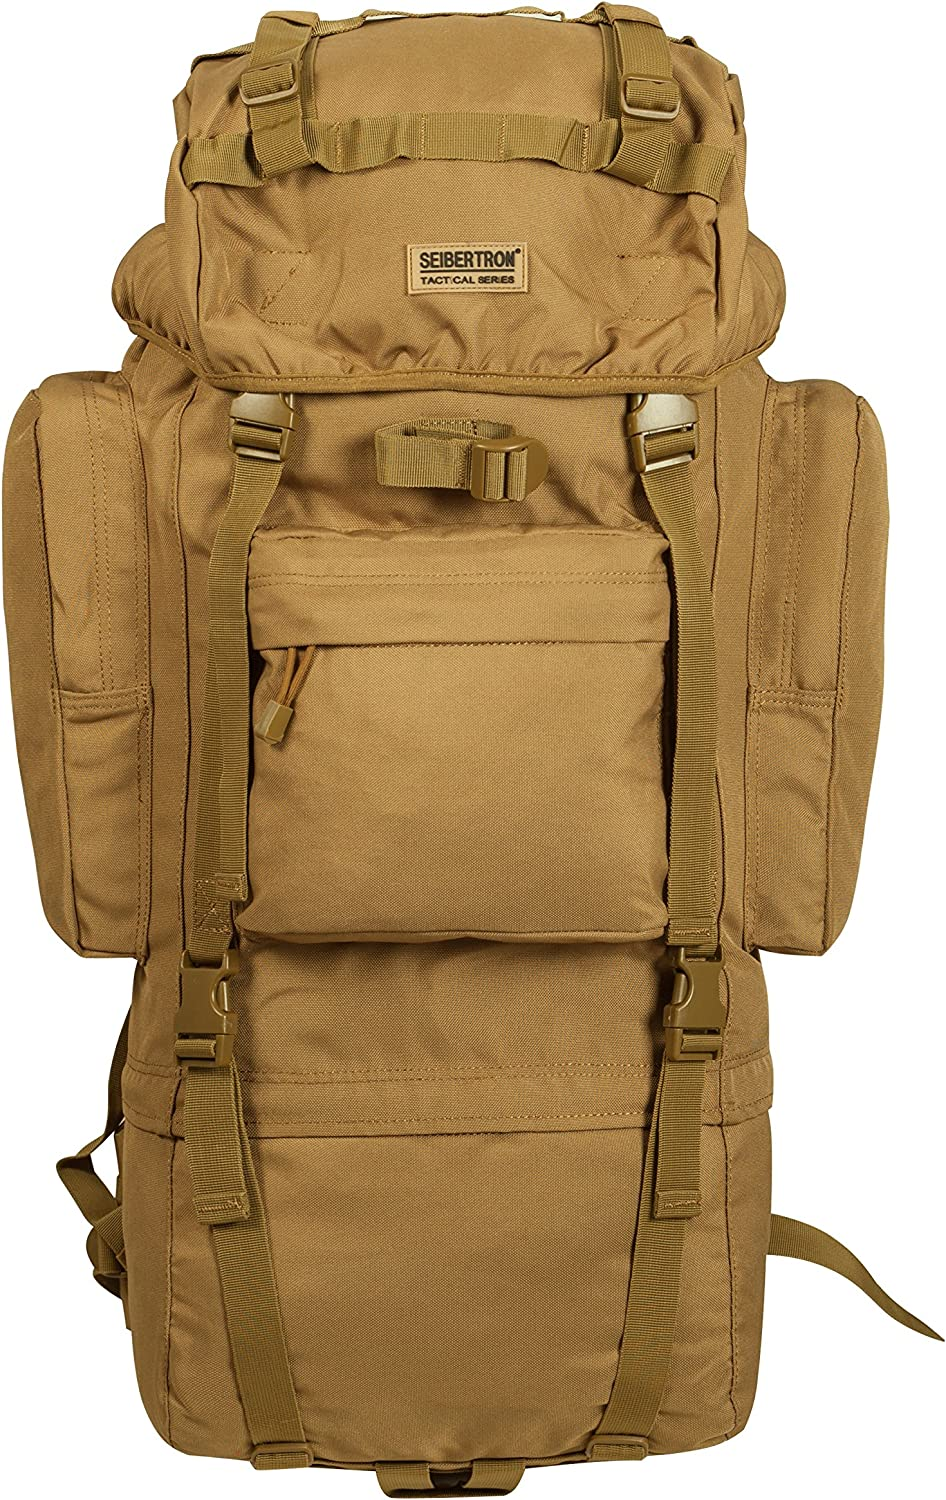 Ultimate Guide To The Best Backpacks For Travel Australia 2021 - Seibertron Military Molle Backpack